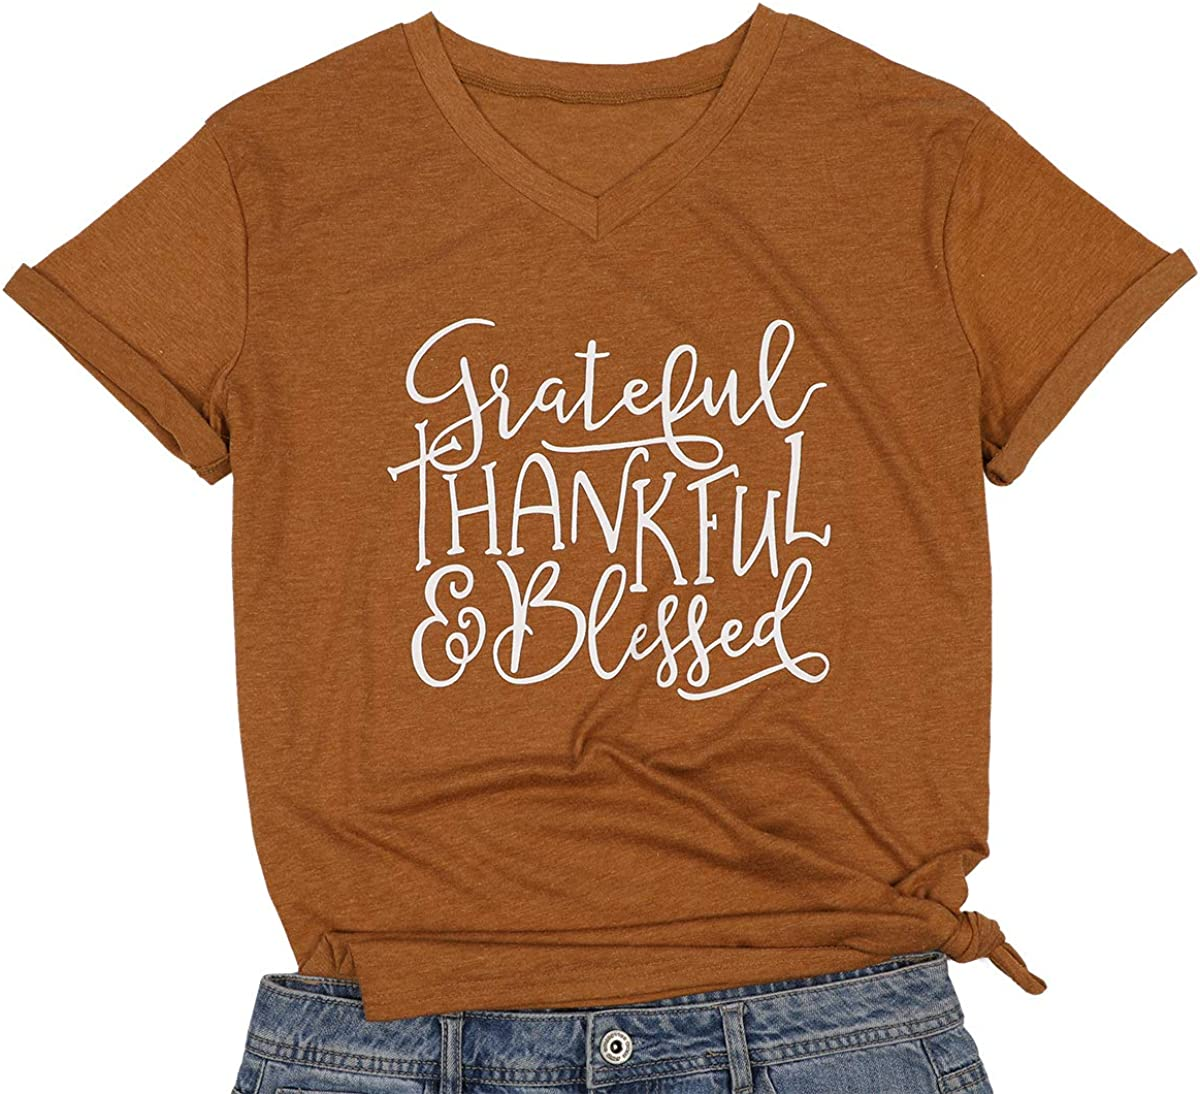 MAXIMGR Women Short Sleeve Grateful Thankful Blessed Tshirts V-Neck Casual Thanksgiving Top Tees